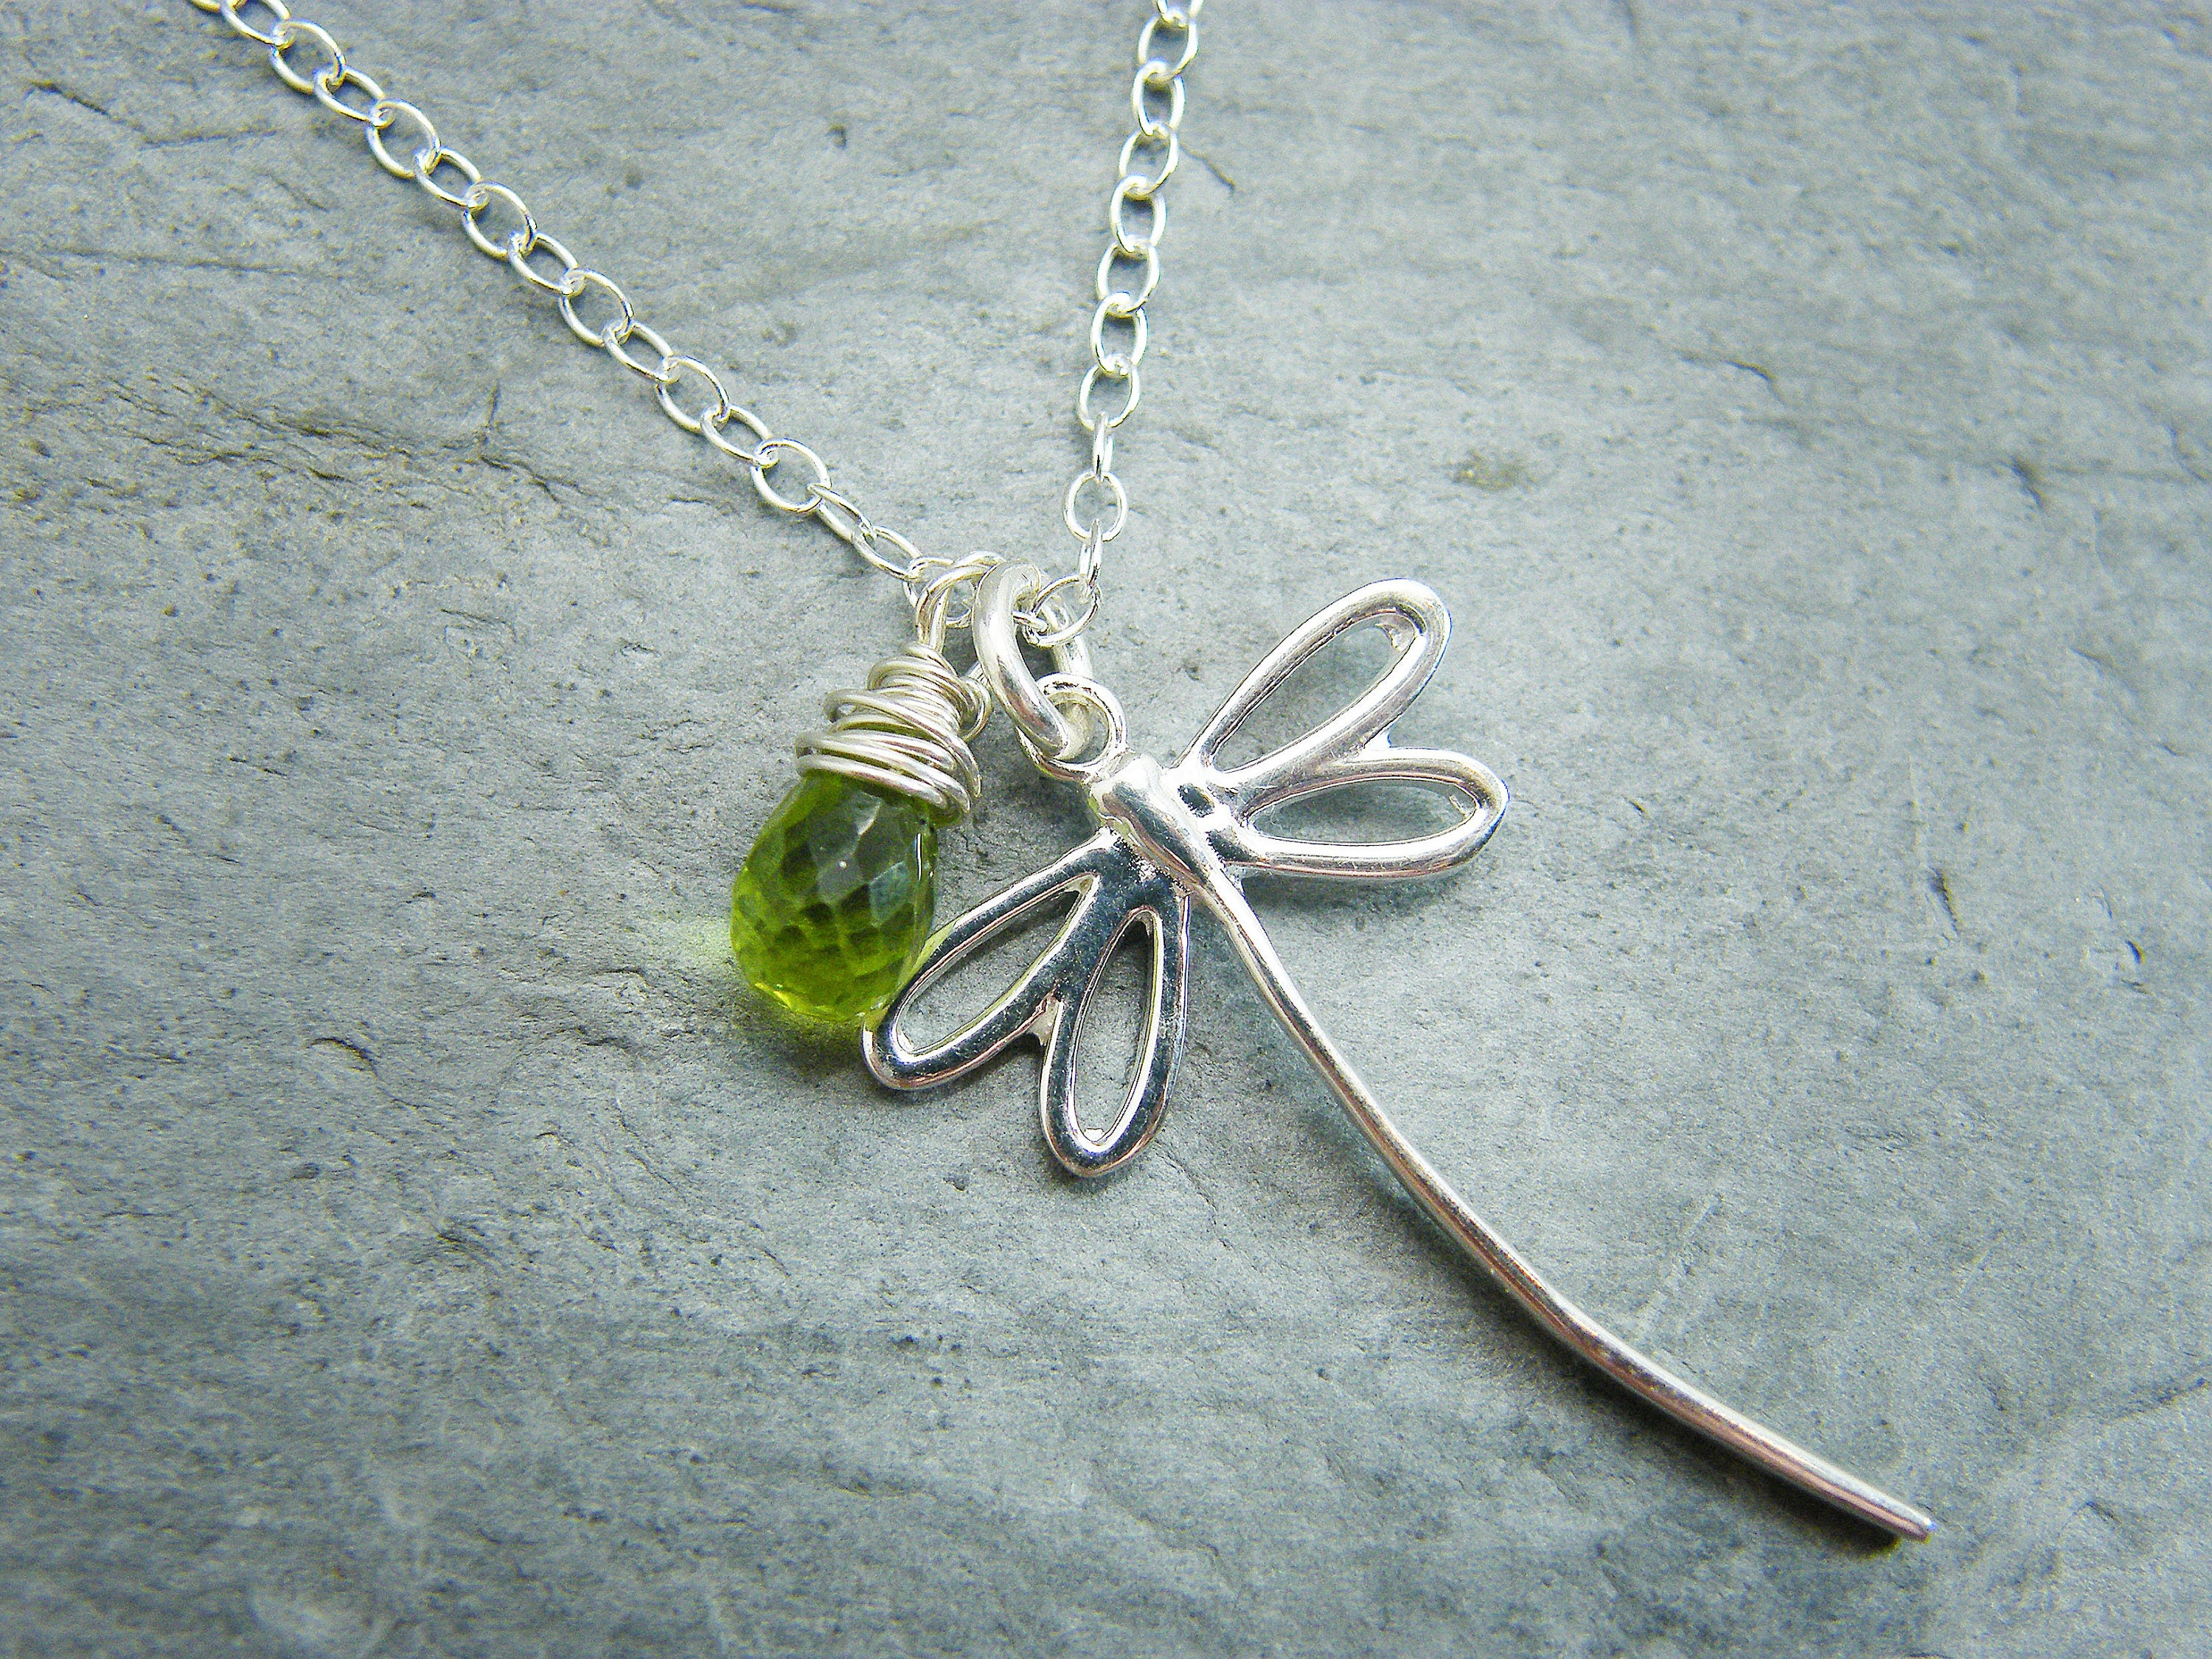 Peridot necklace Jewelry gift for August birthday Peridot